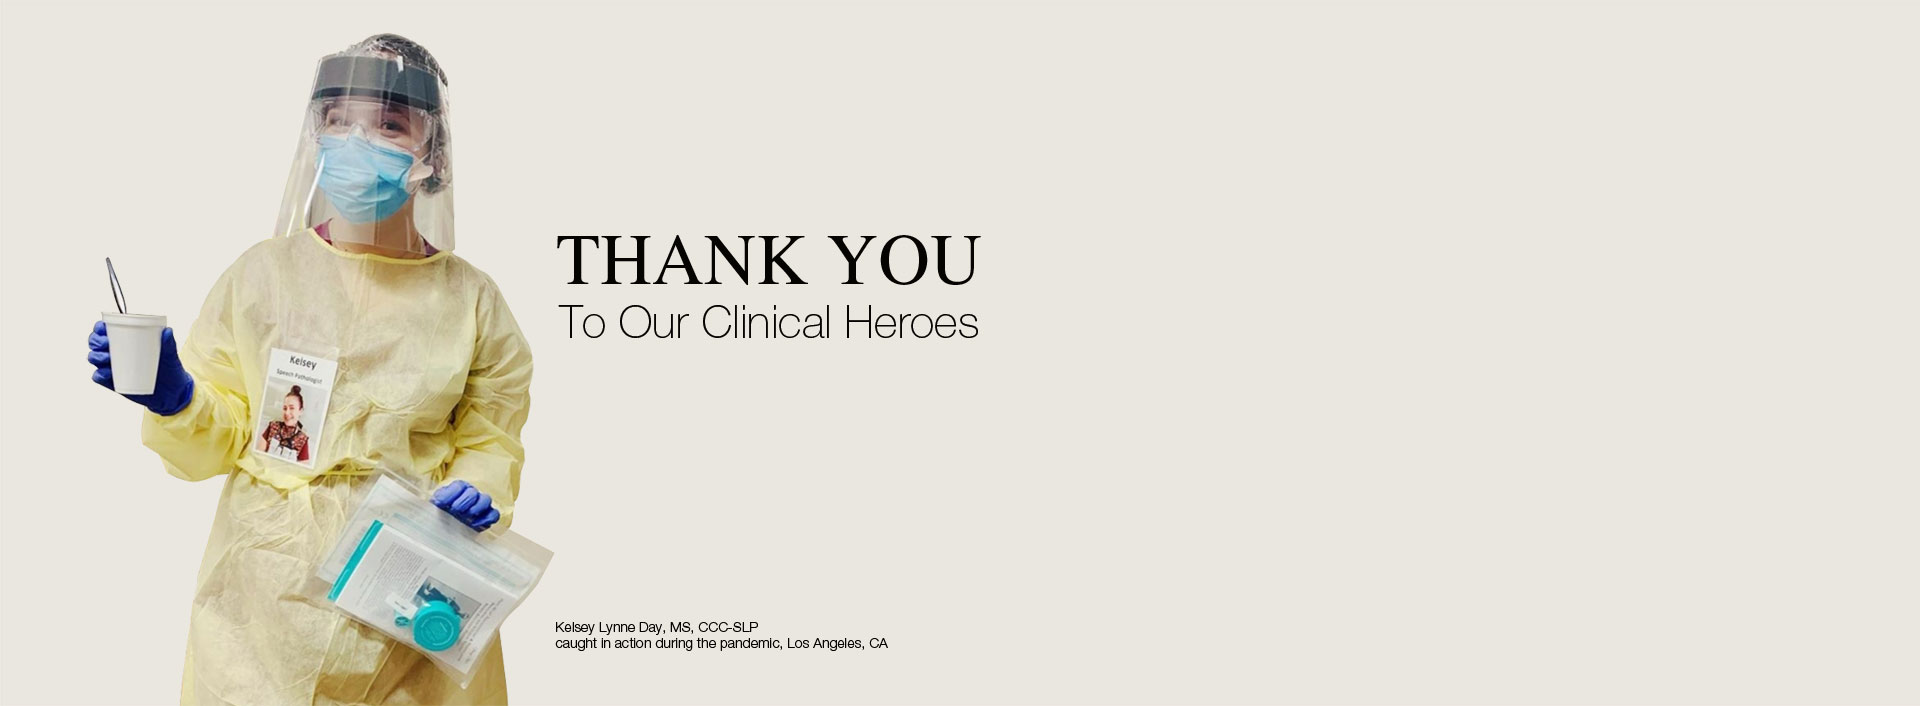 Thank You to Our Clinical Heroes